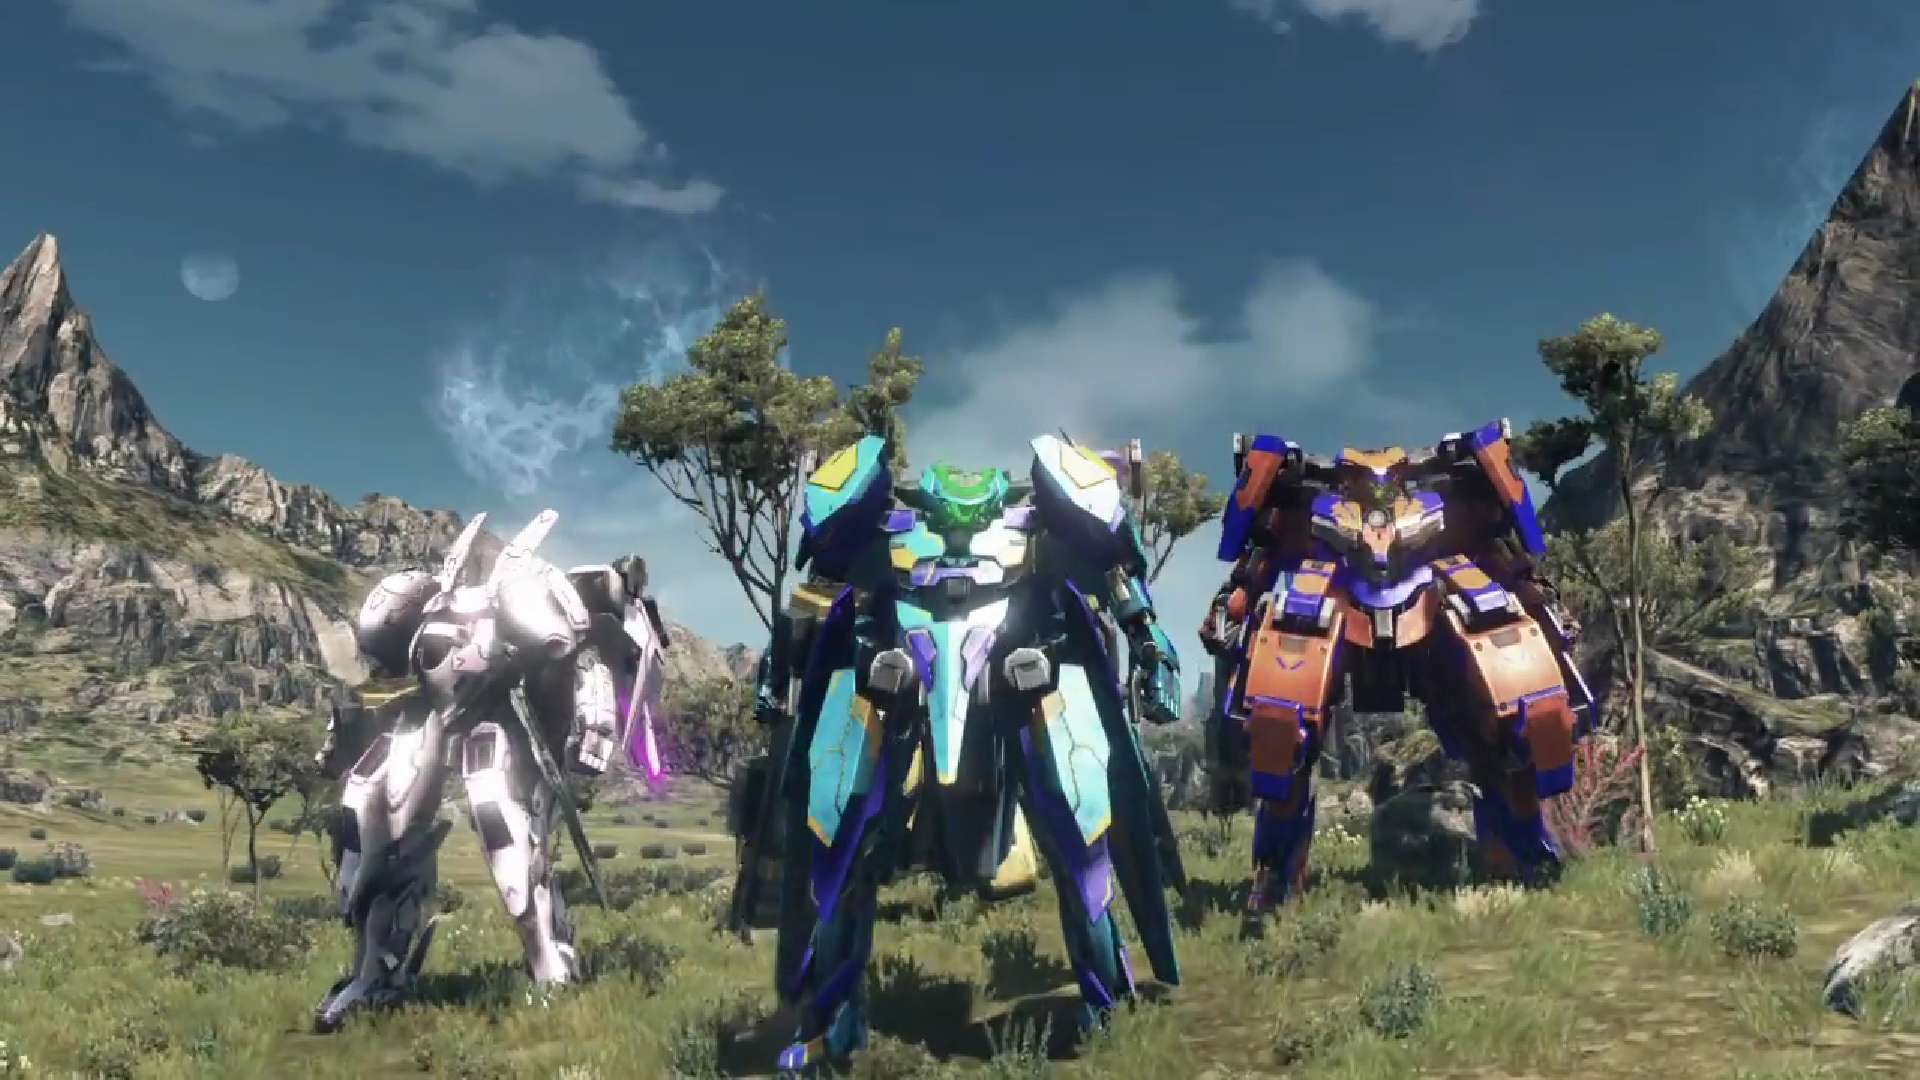 Wii U Exclusive Xenoblade Chronicles X Makes Japanese Viewers Go